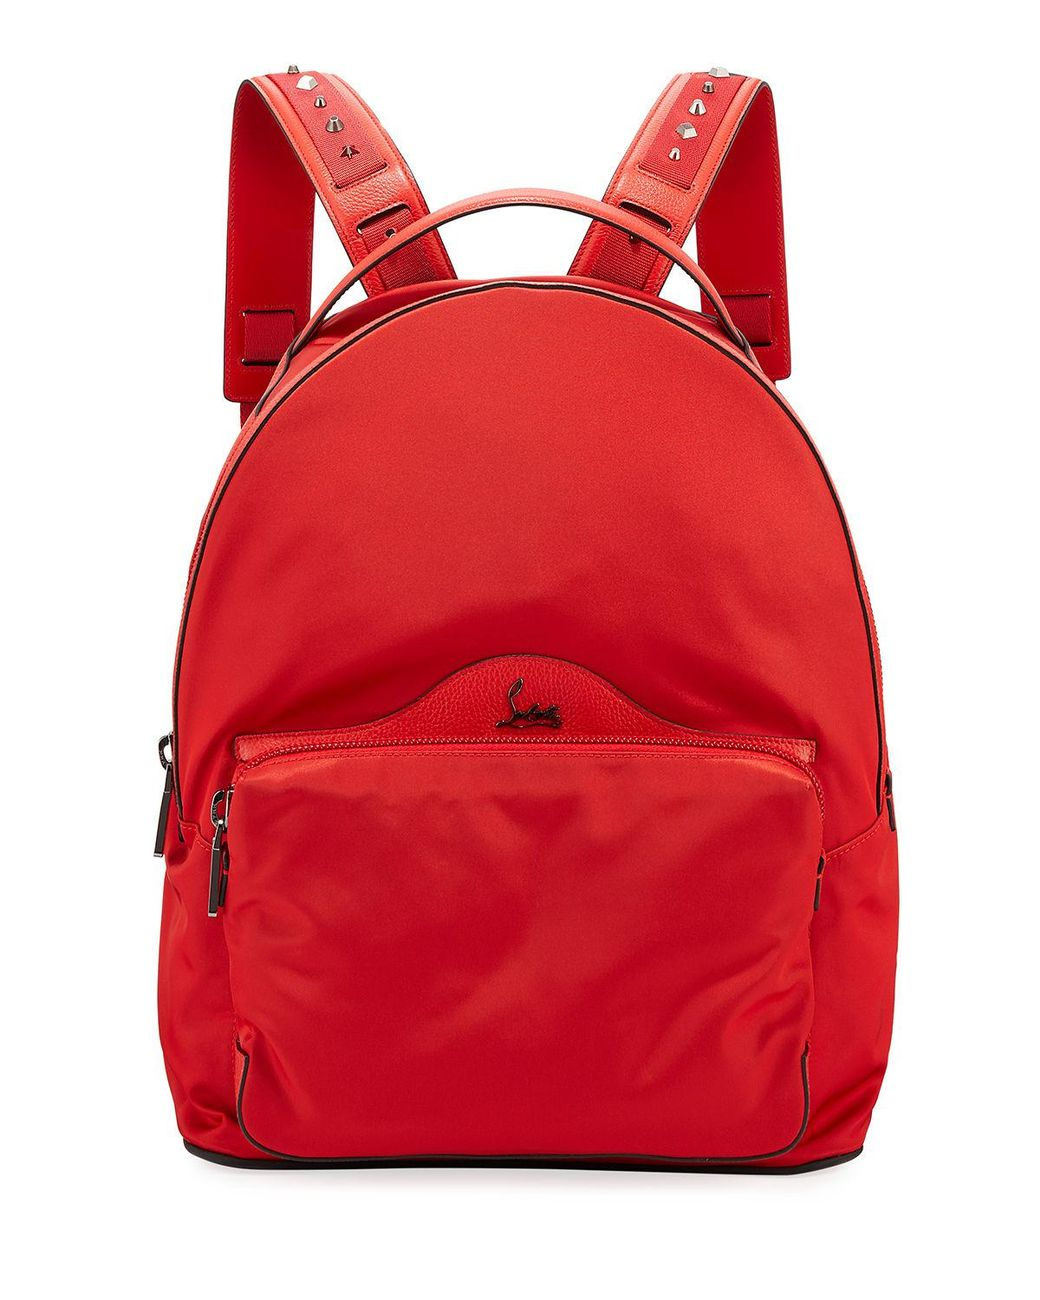 5c519c17d05 Red Backloubi Empire Men's Backpack